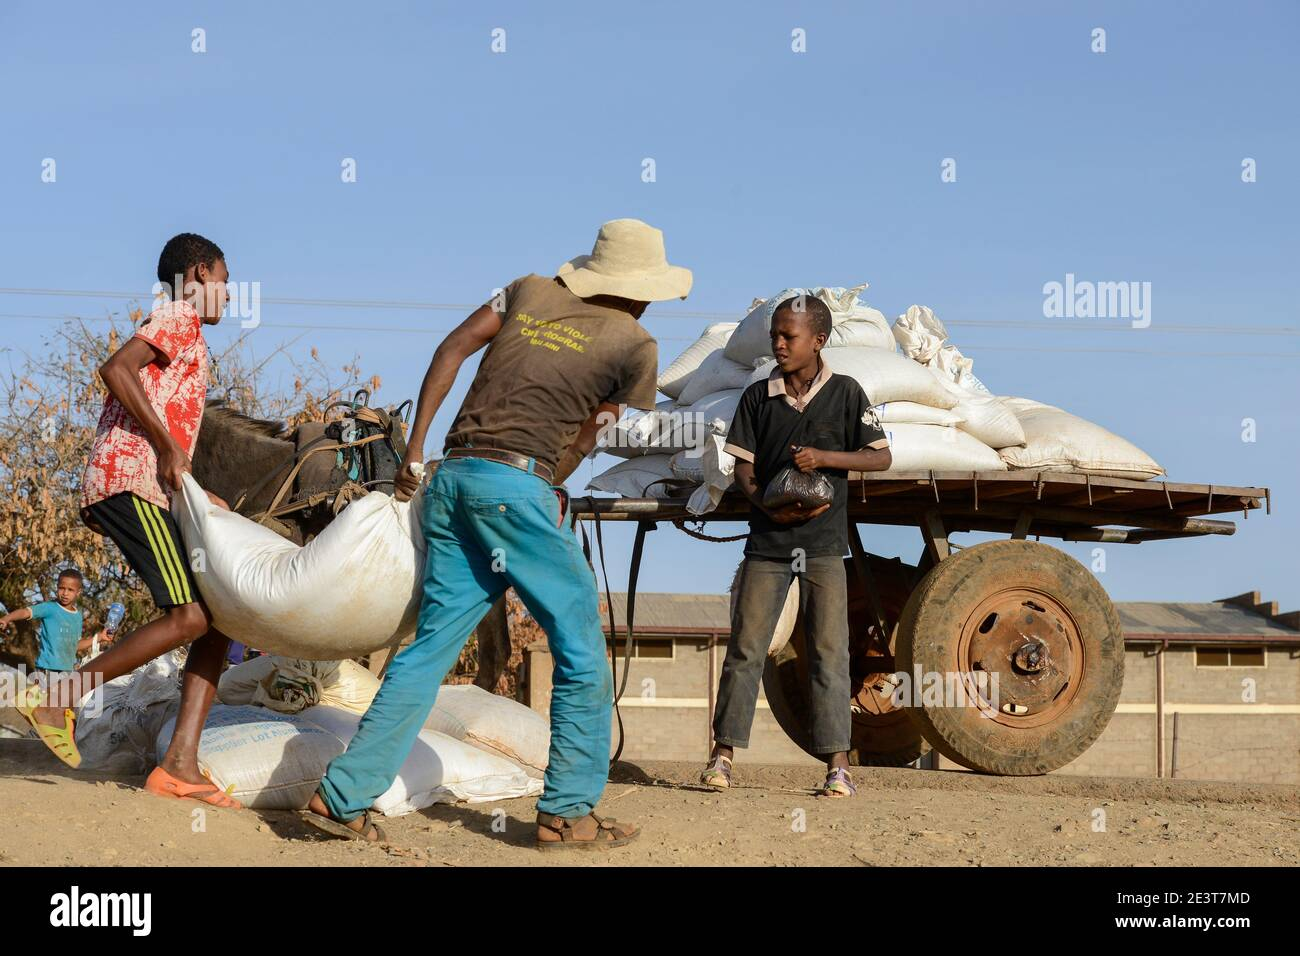 ETHIOPIA, Tigray, Shire, eritrean refugee camp May-Ayni managed by ARRA and UNHCR, WFP food distribution / AETHIOPIEN, Tigray, Shire, Fluechtlingslager May-Ayni fuer eritreische Fluechtlinge, Abholung von Nahrungsmittel Rationen des WFP Stock Photo